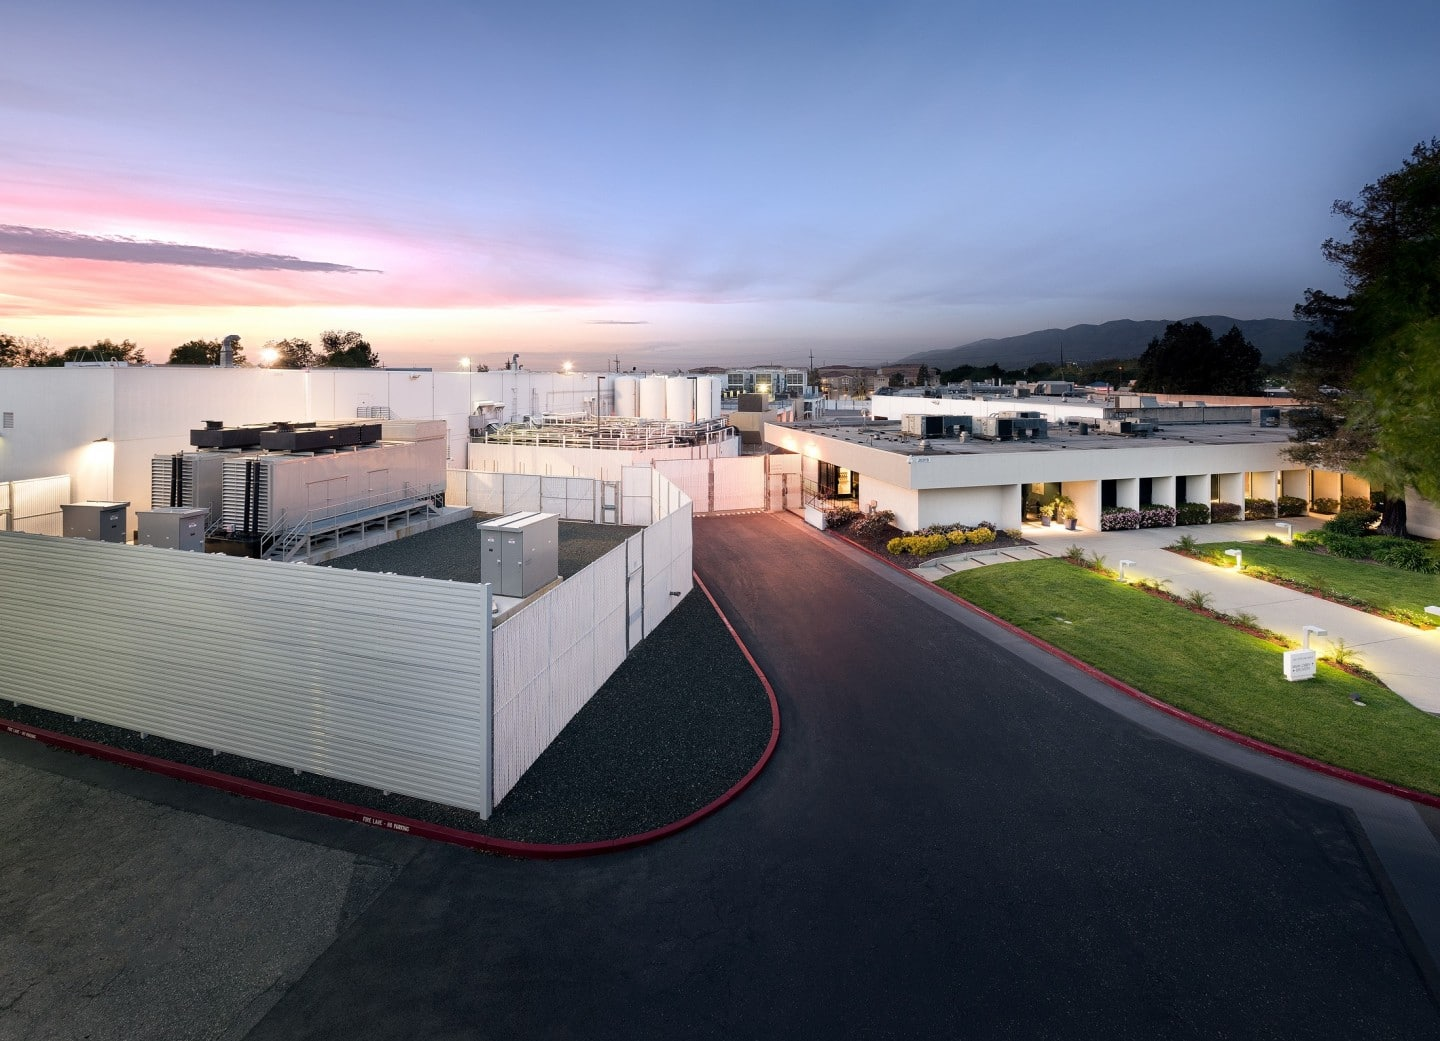 Looking for a Data Center with Renewable Energy in Silicon Valley?